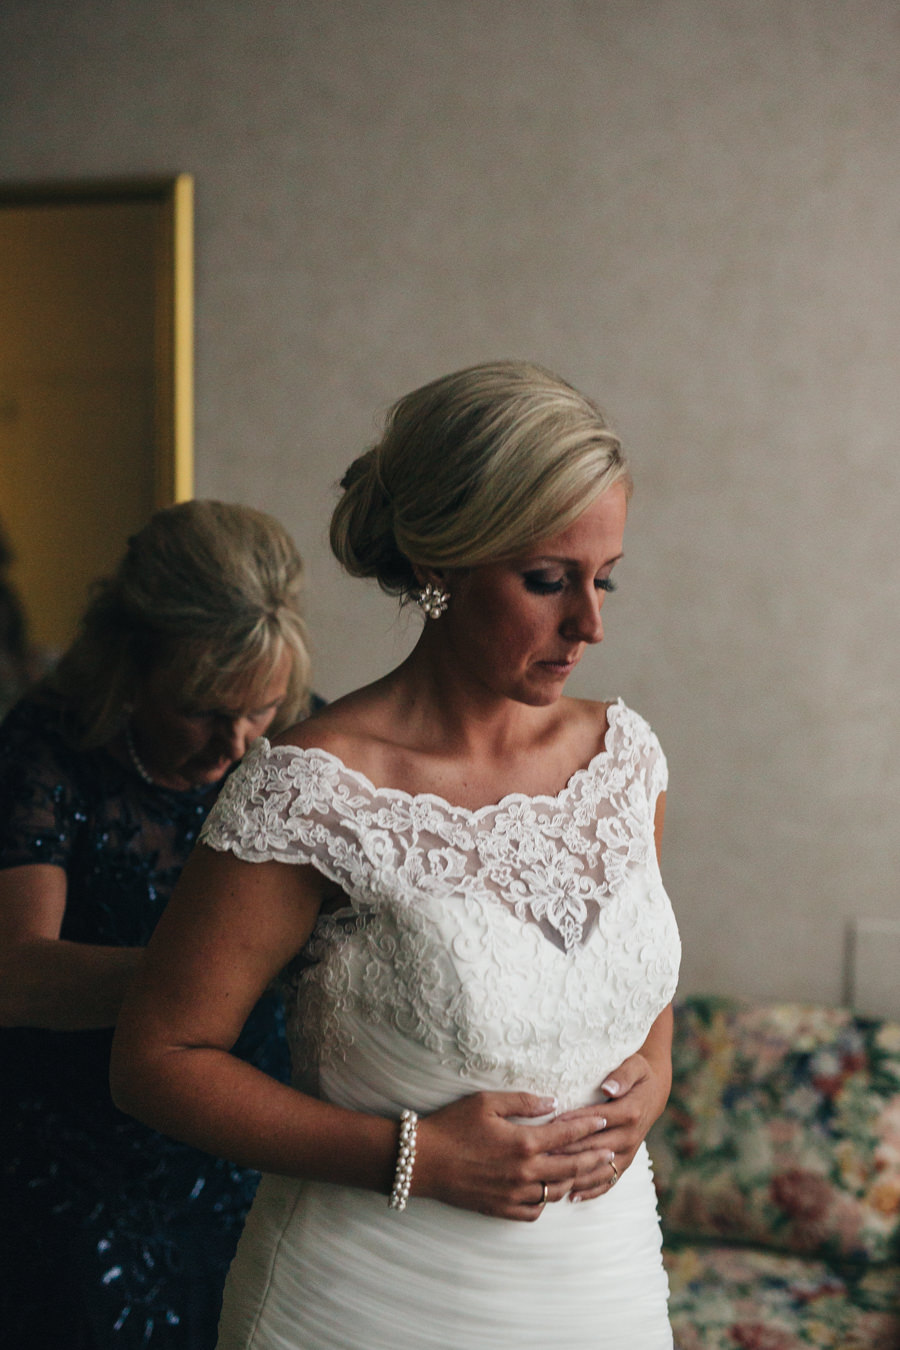 Bride getting dressed for wedding day